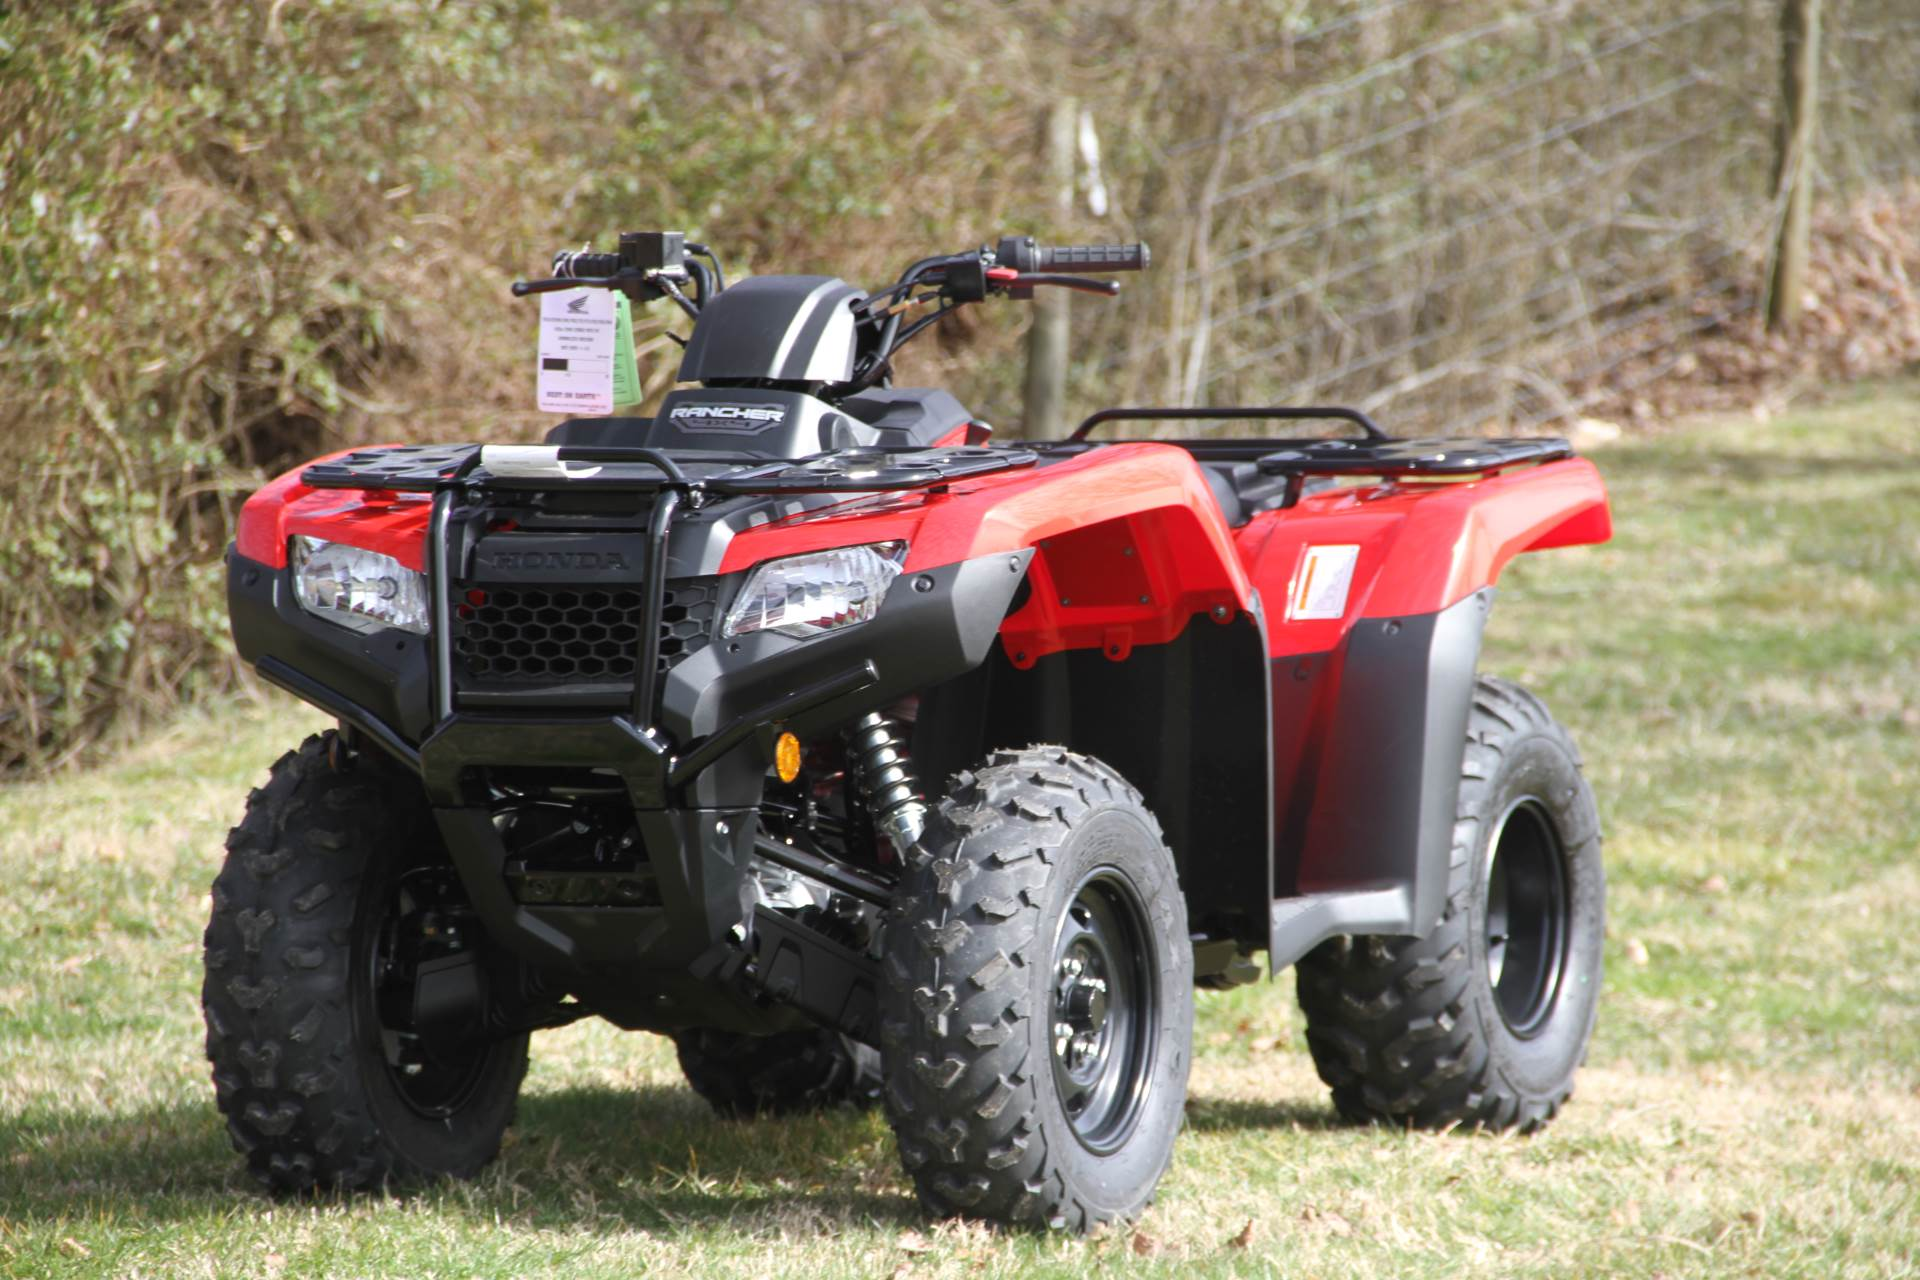 2020 Honda FourTrax Rancher 4x4 in Hendersonville, North Carolina - Photo 24